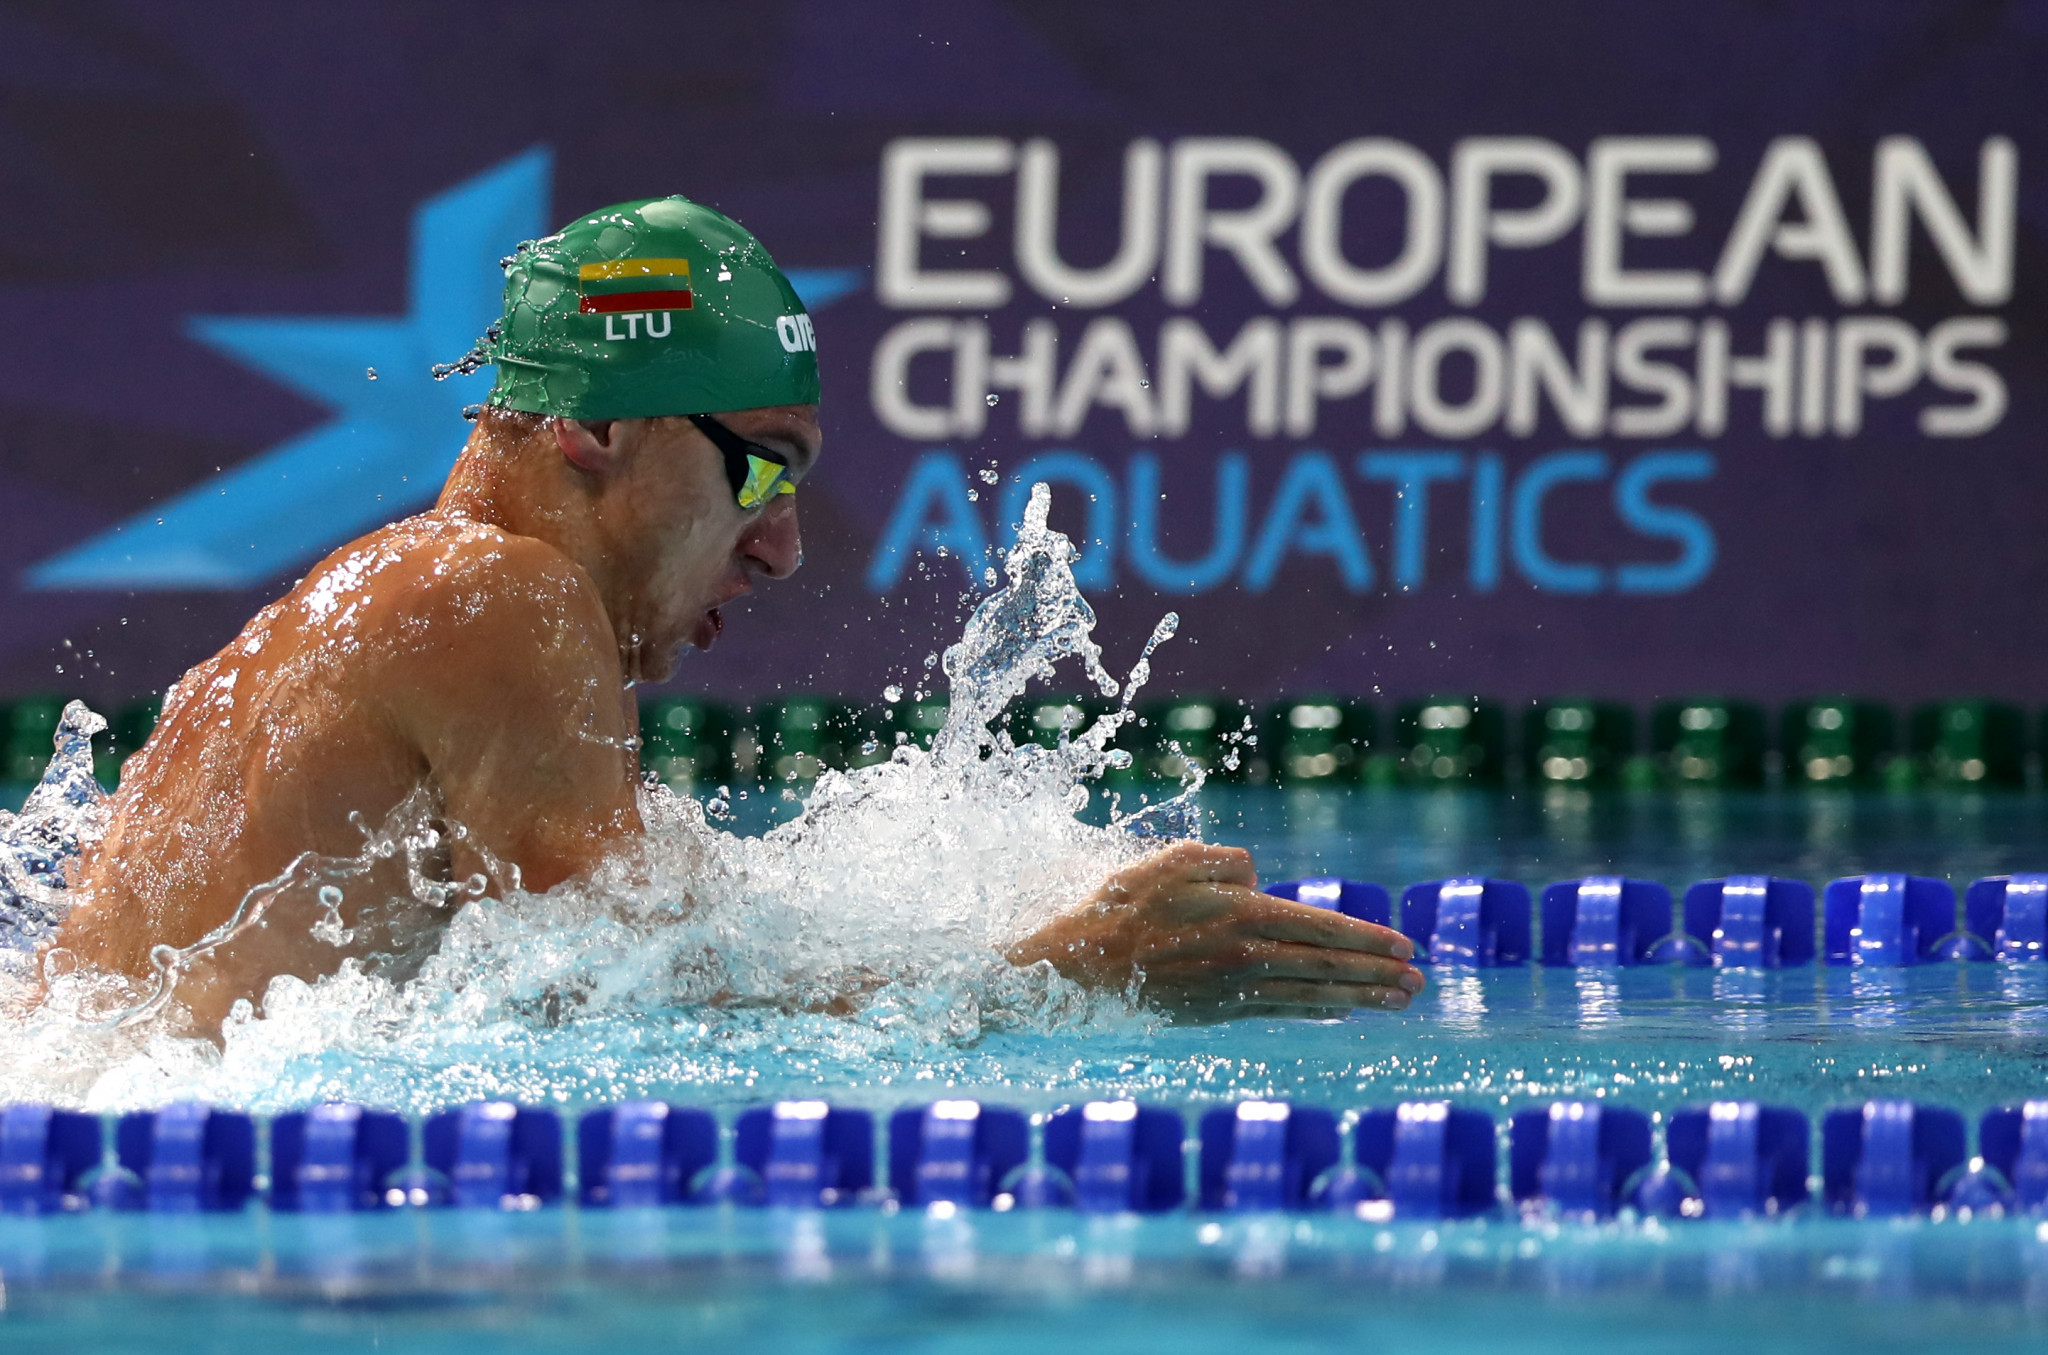 MicroPlus' services were used at the 2018 European Aquatics Championships in Glasgow ©Getty Images